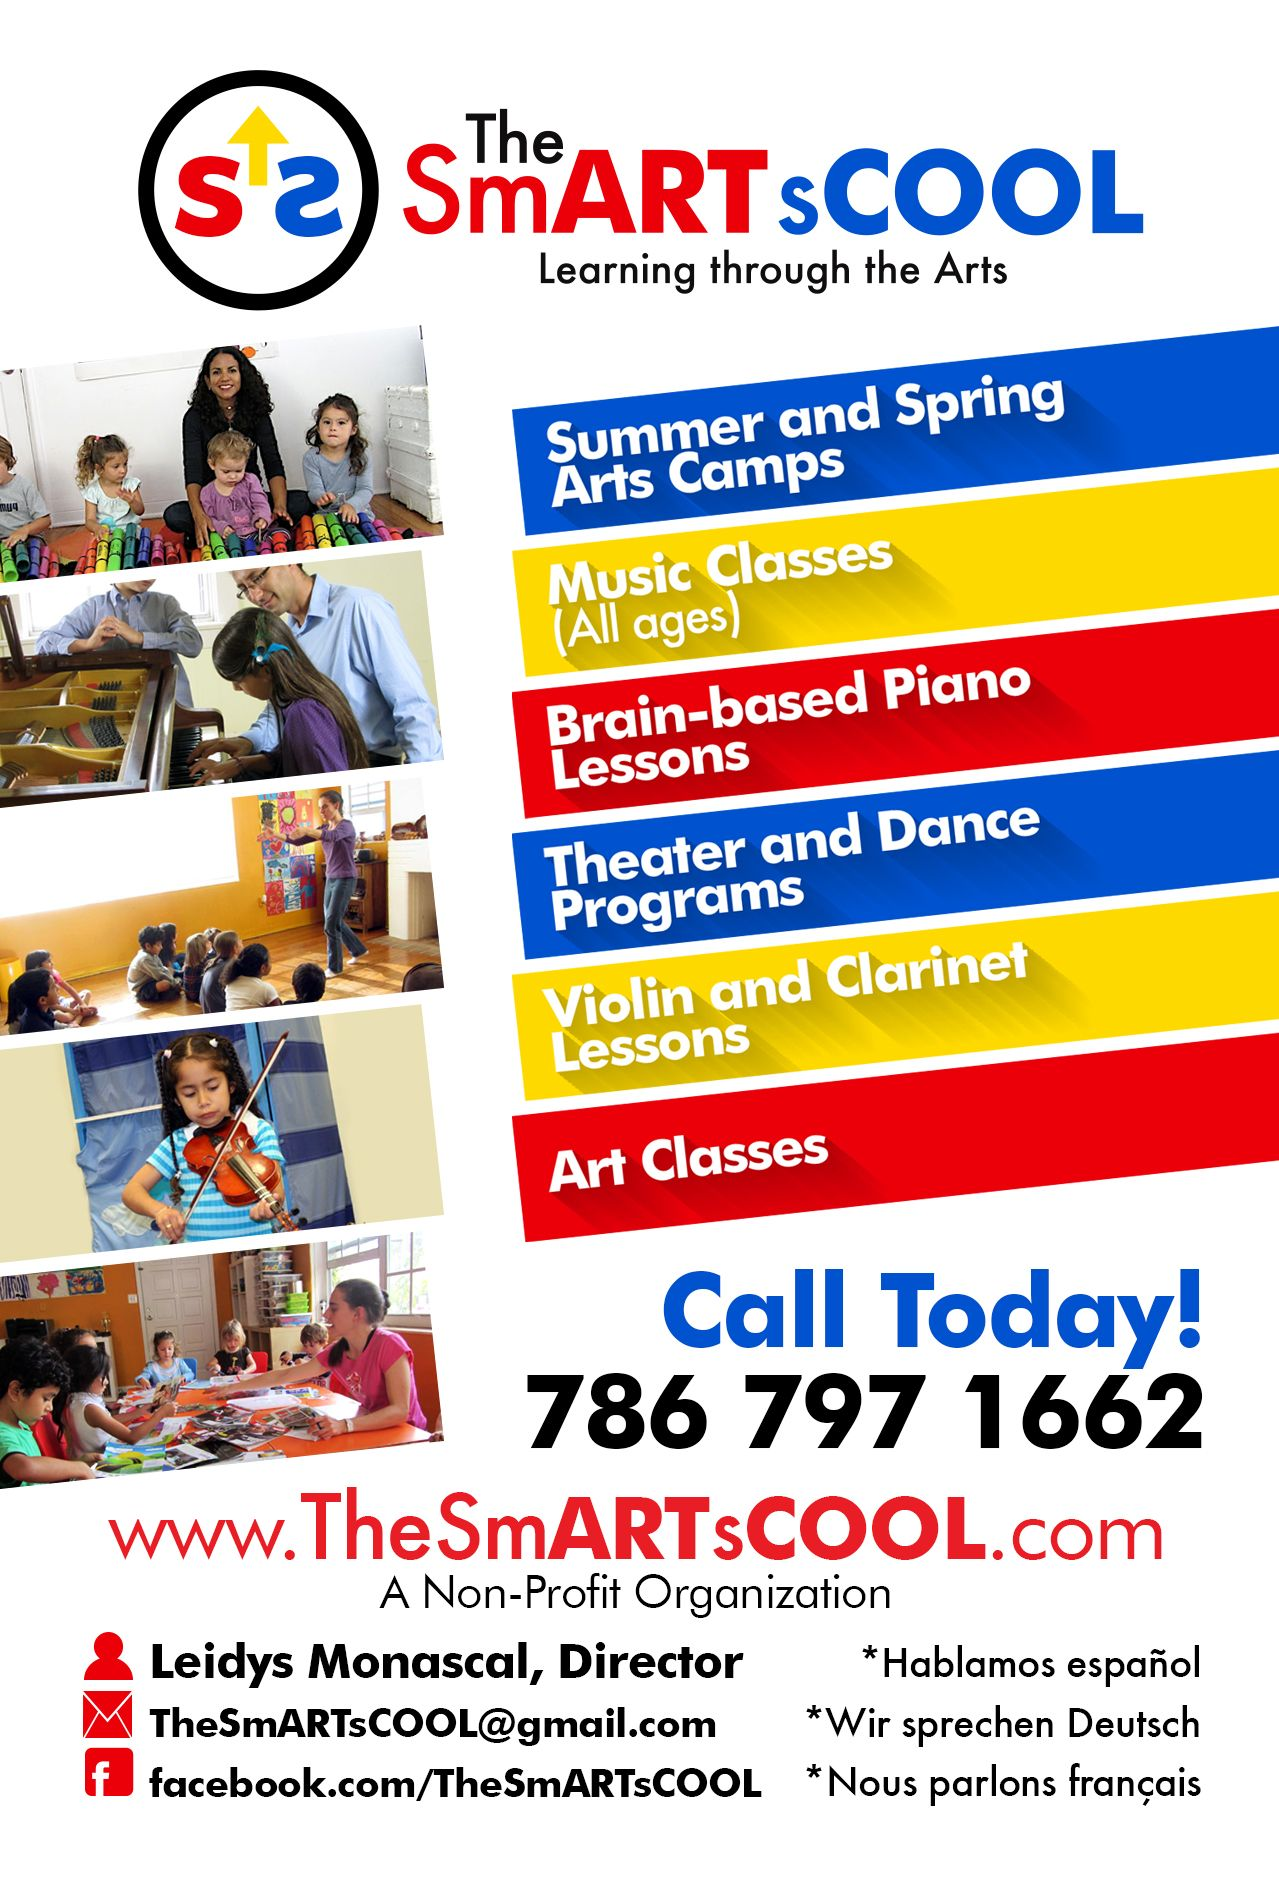 Programs offered by TheSmARTsCOOL in our three locations in Miami. Please contact us for more information